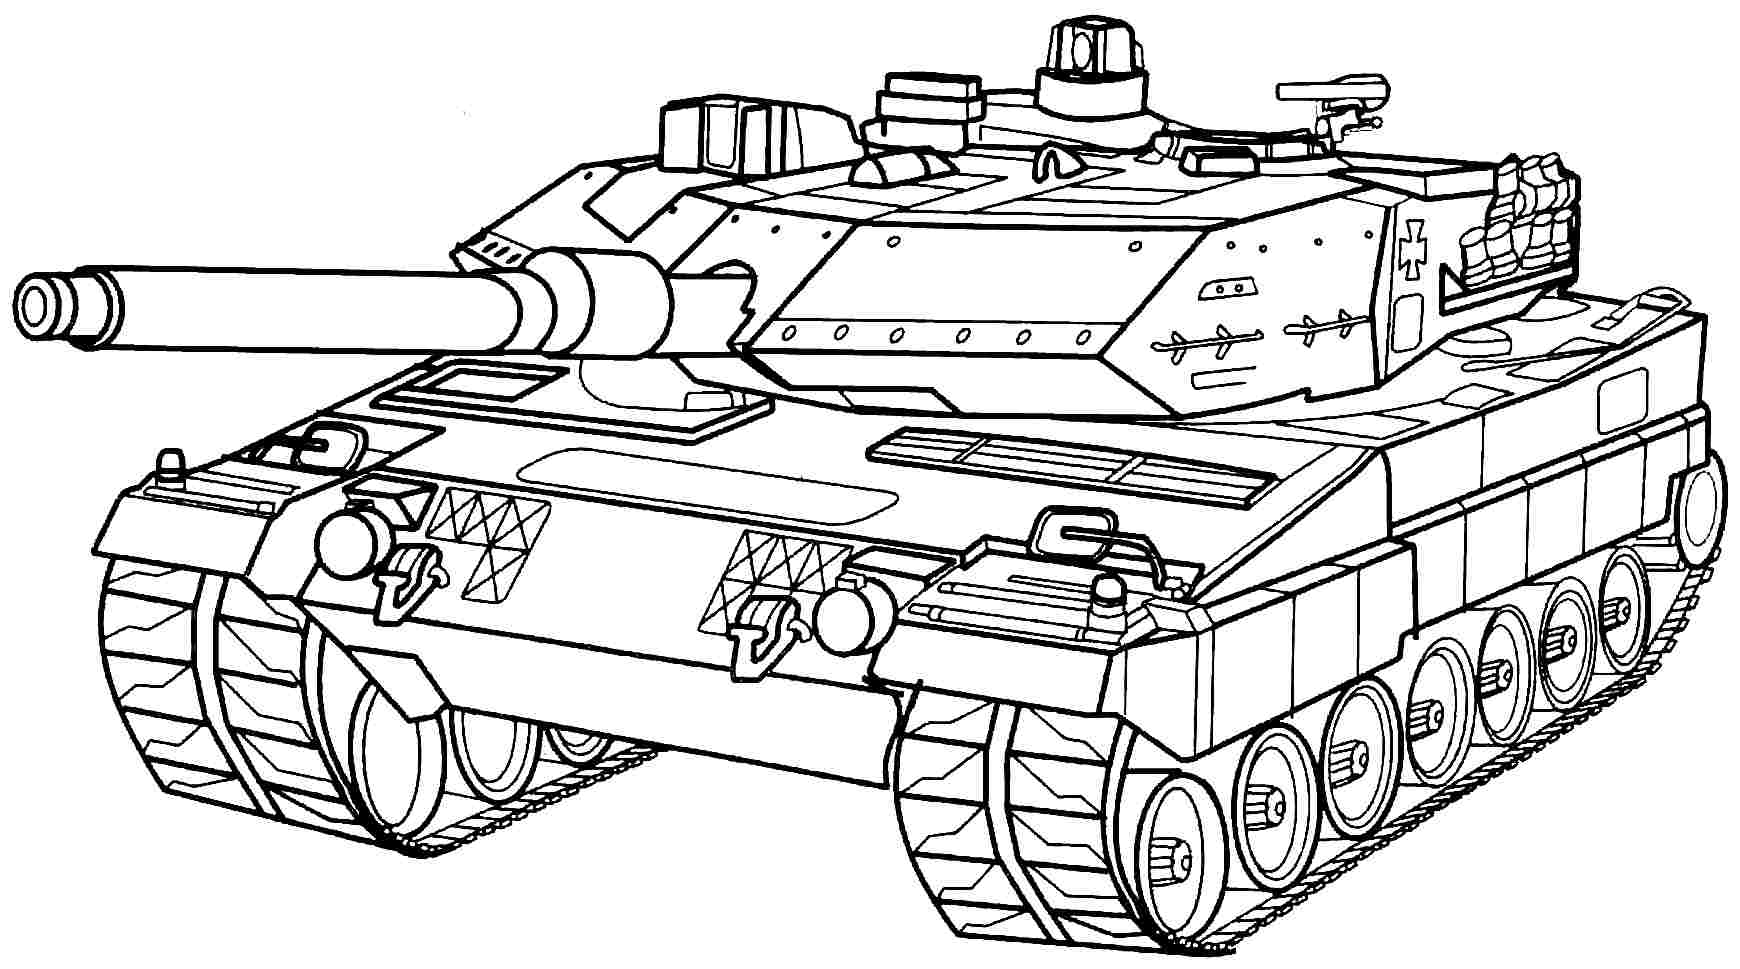 free printable army coloring pages army coloring pages for kids and for adults coloring home army coloring printable pages free